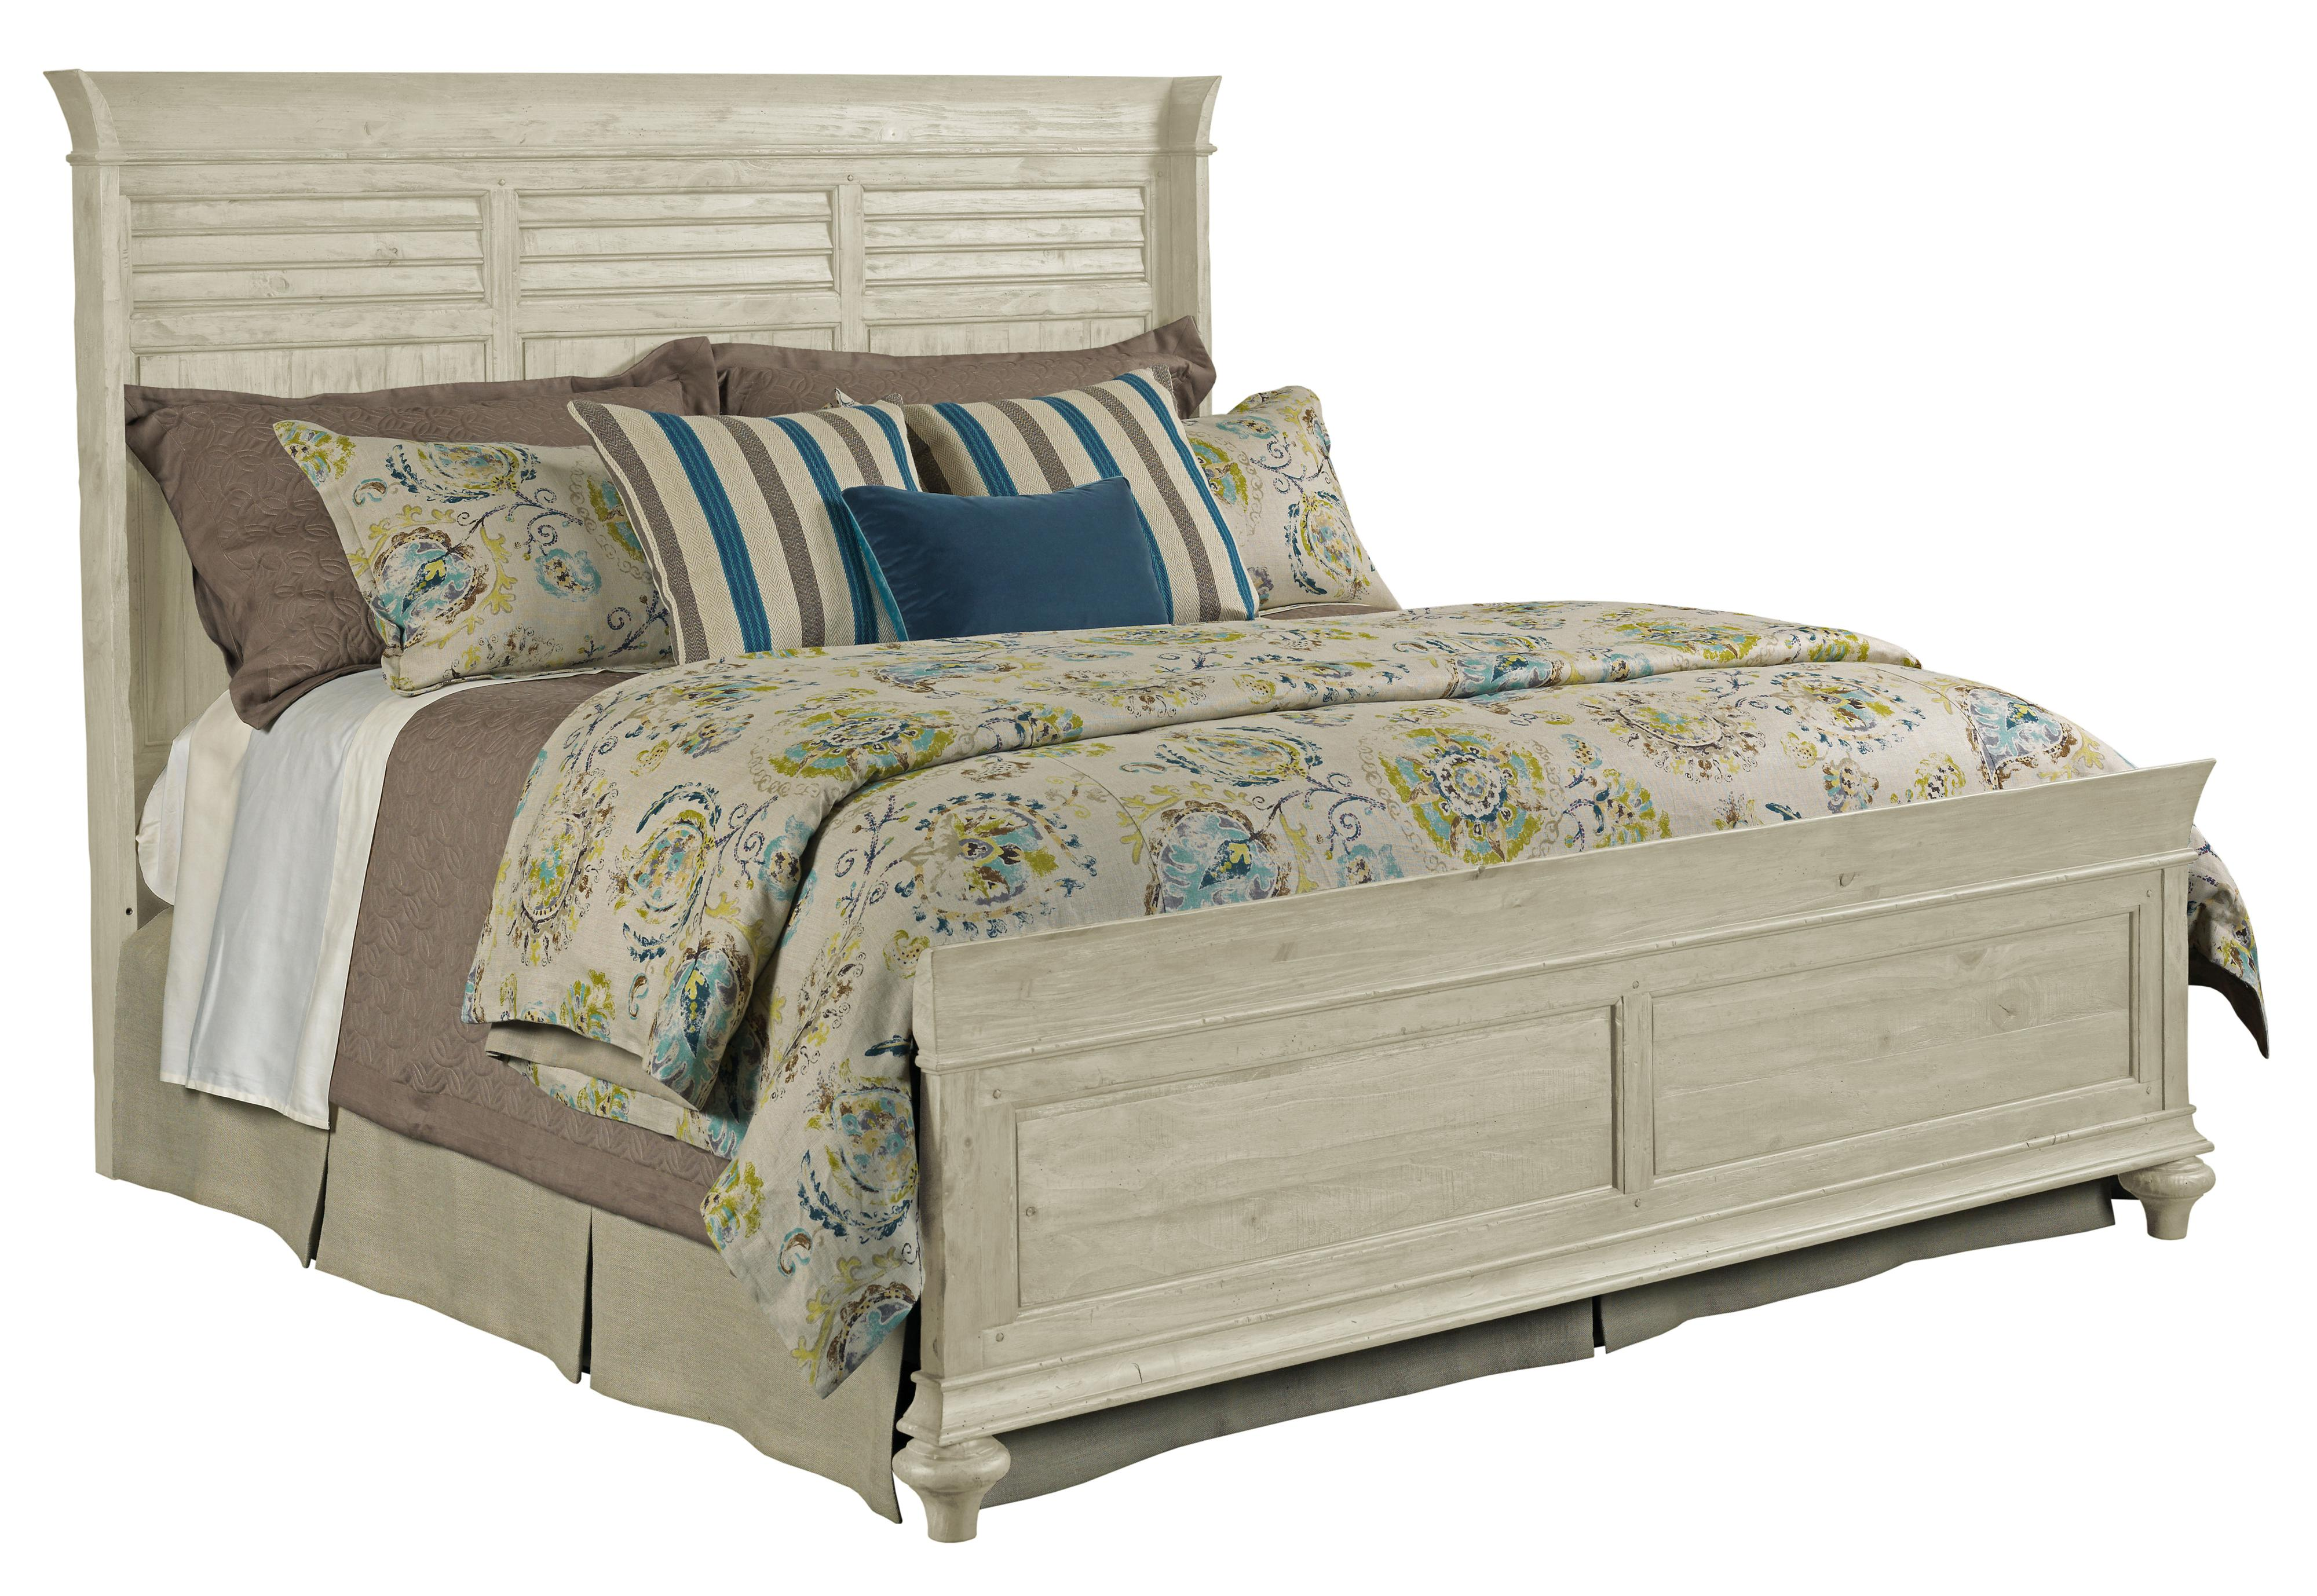 Weatherford Shelter Bed 5/0 Package by Kincaid Furniture at Home Collections Furniture